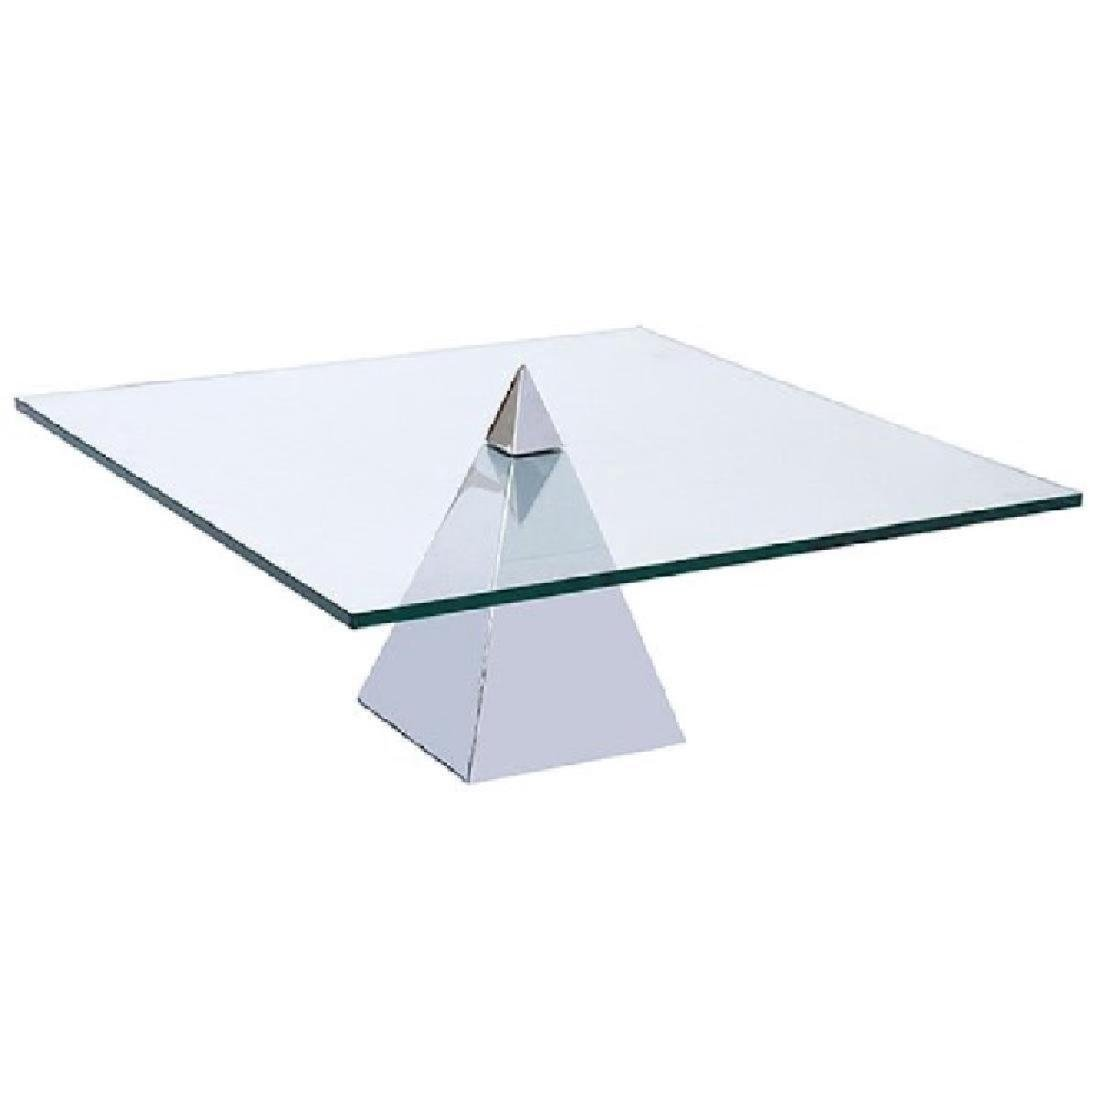 CHROME PYRAMID BASE, COFFEE TABLE, 1970, UNSIGNED